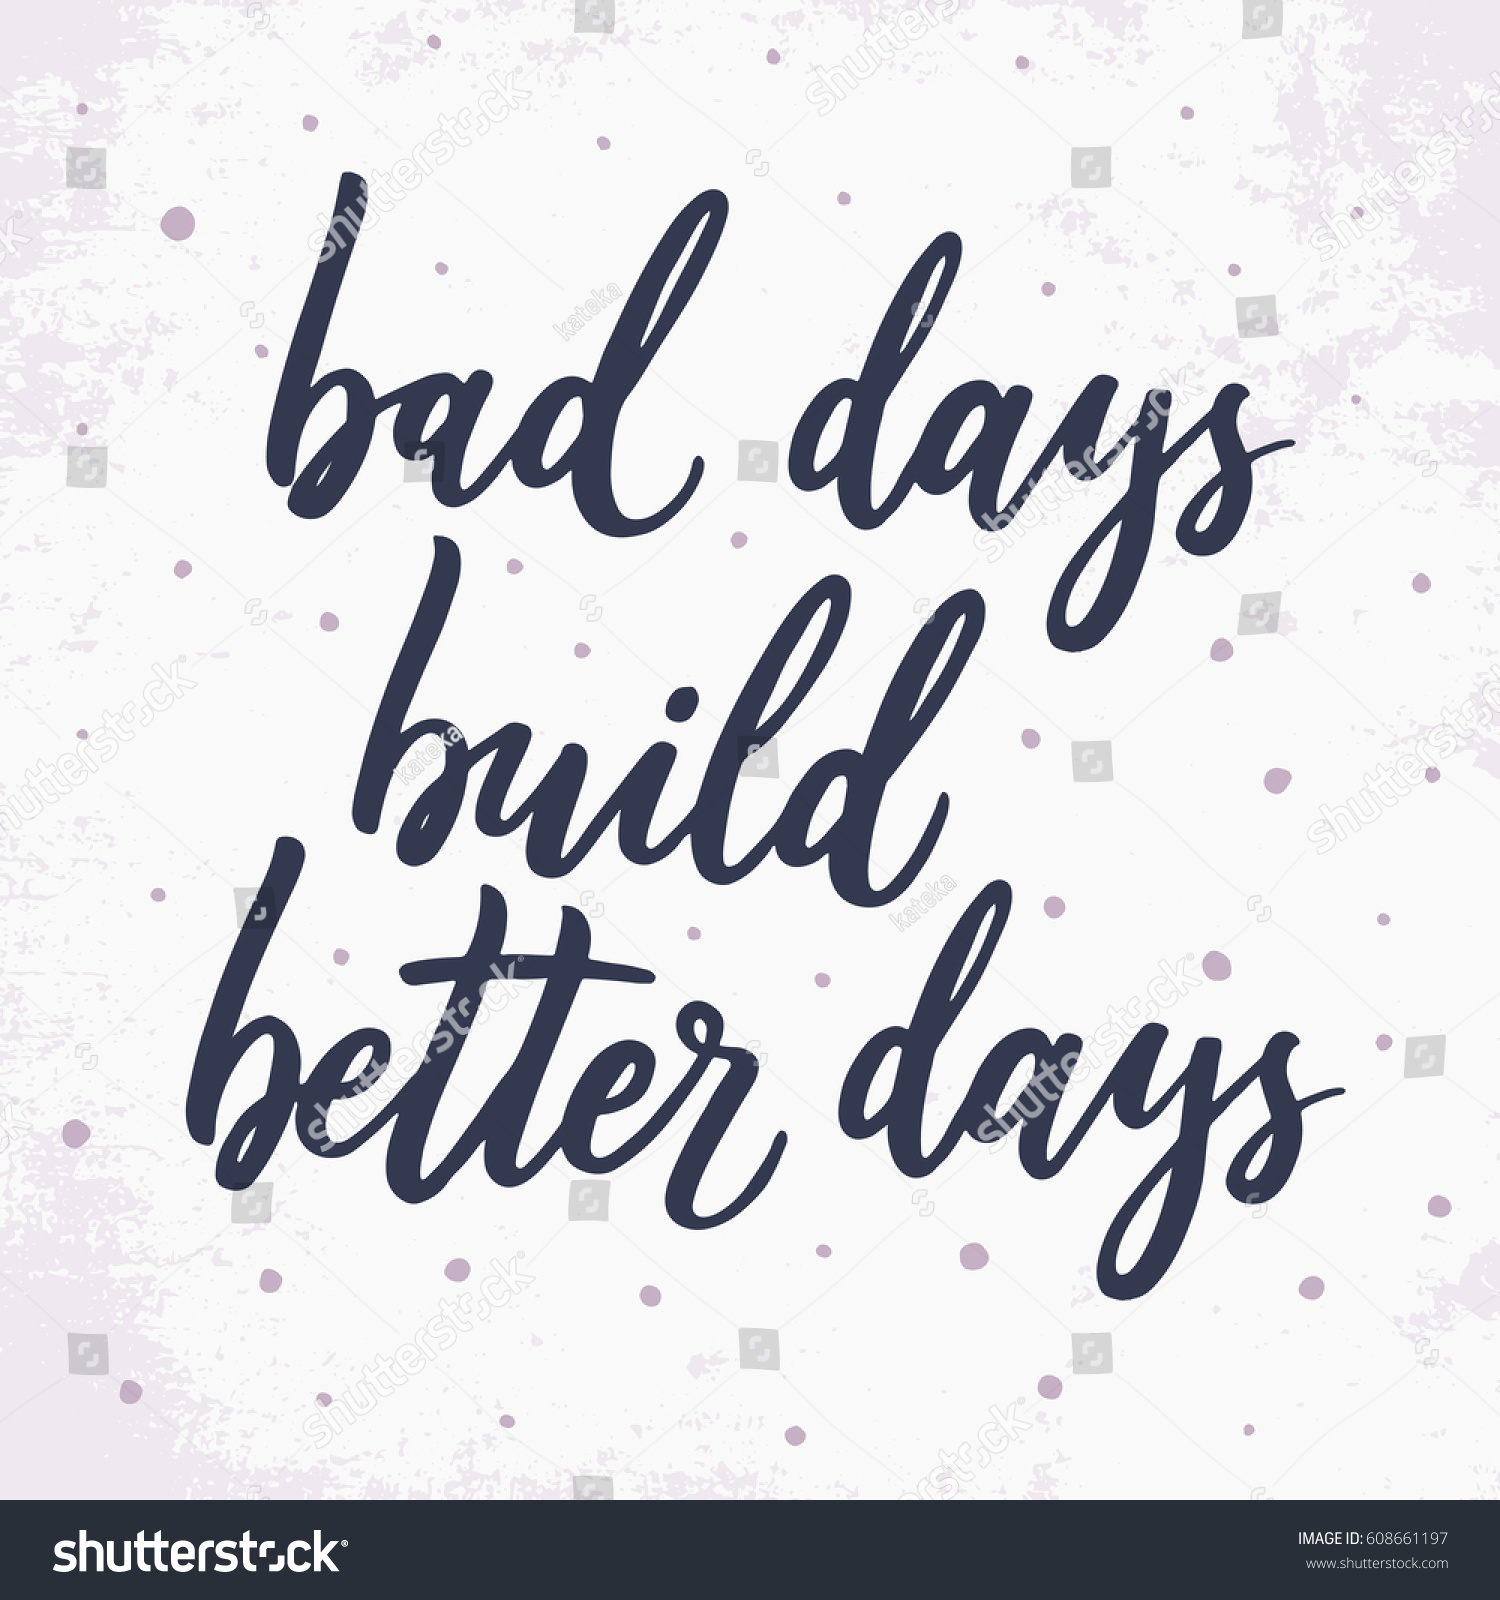 Better Days Quotes Bad Days Build Better Days Hand Stock Vector 608661197  Shutterstock